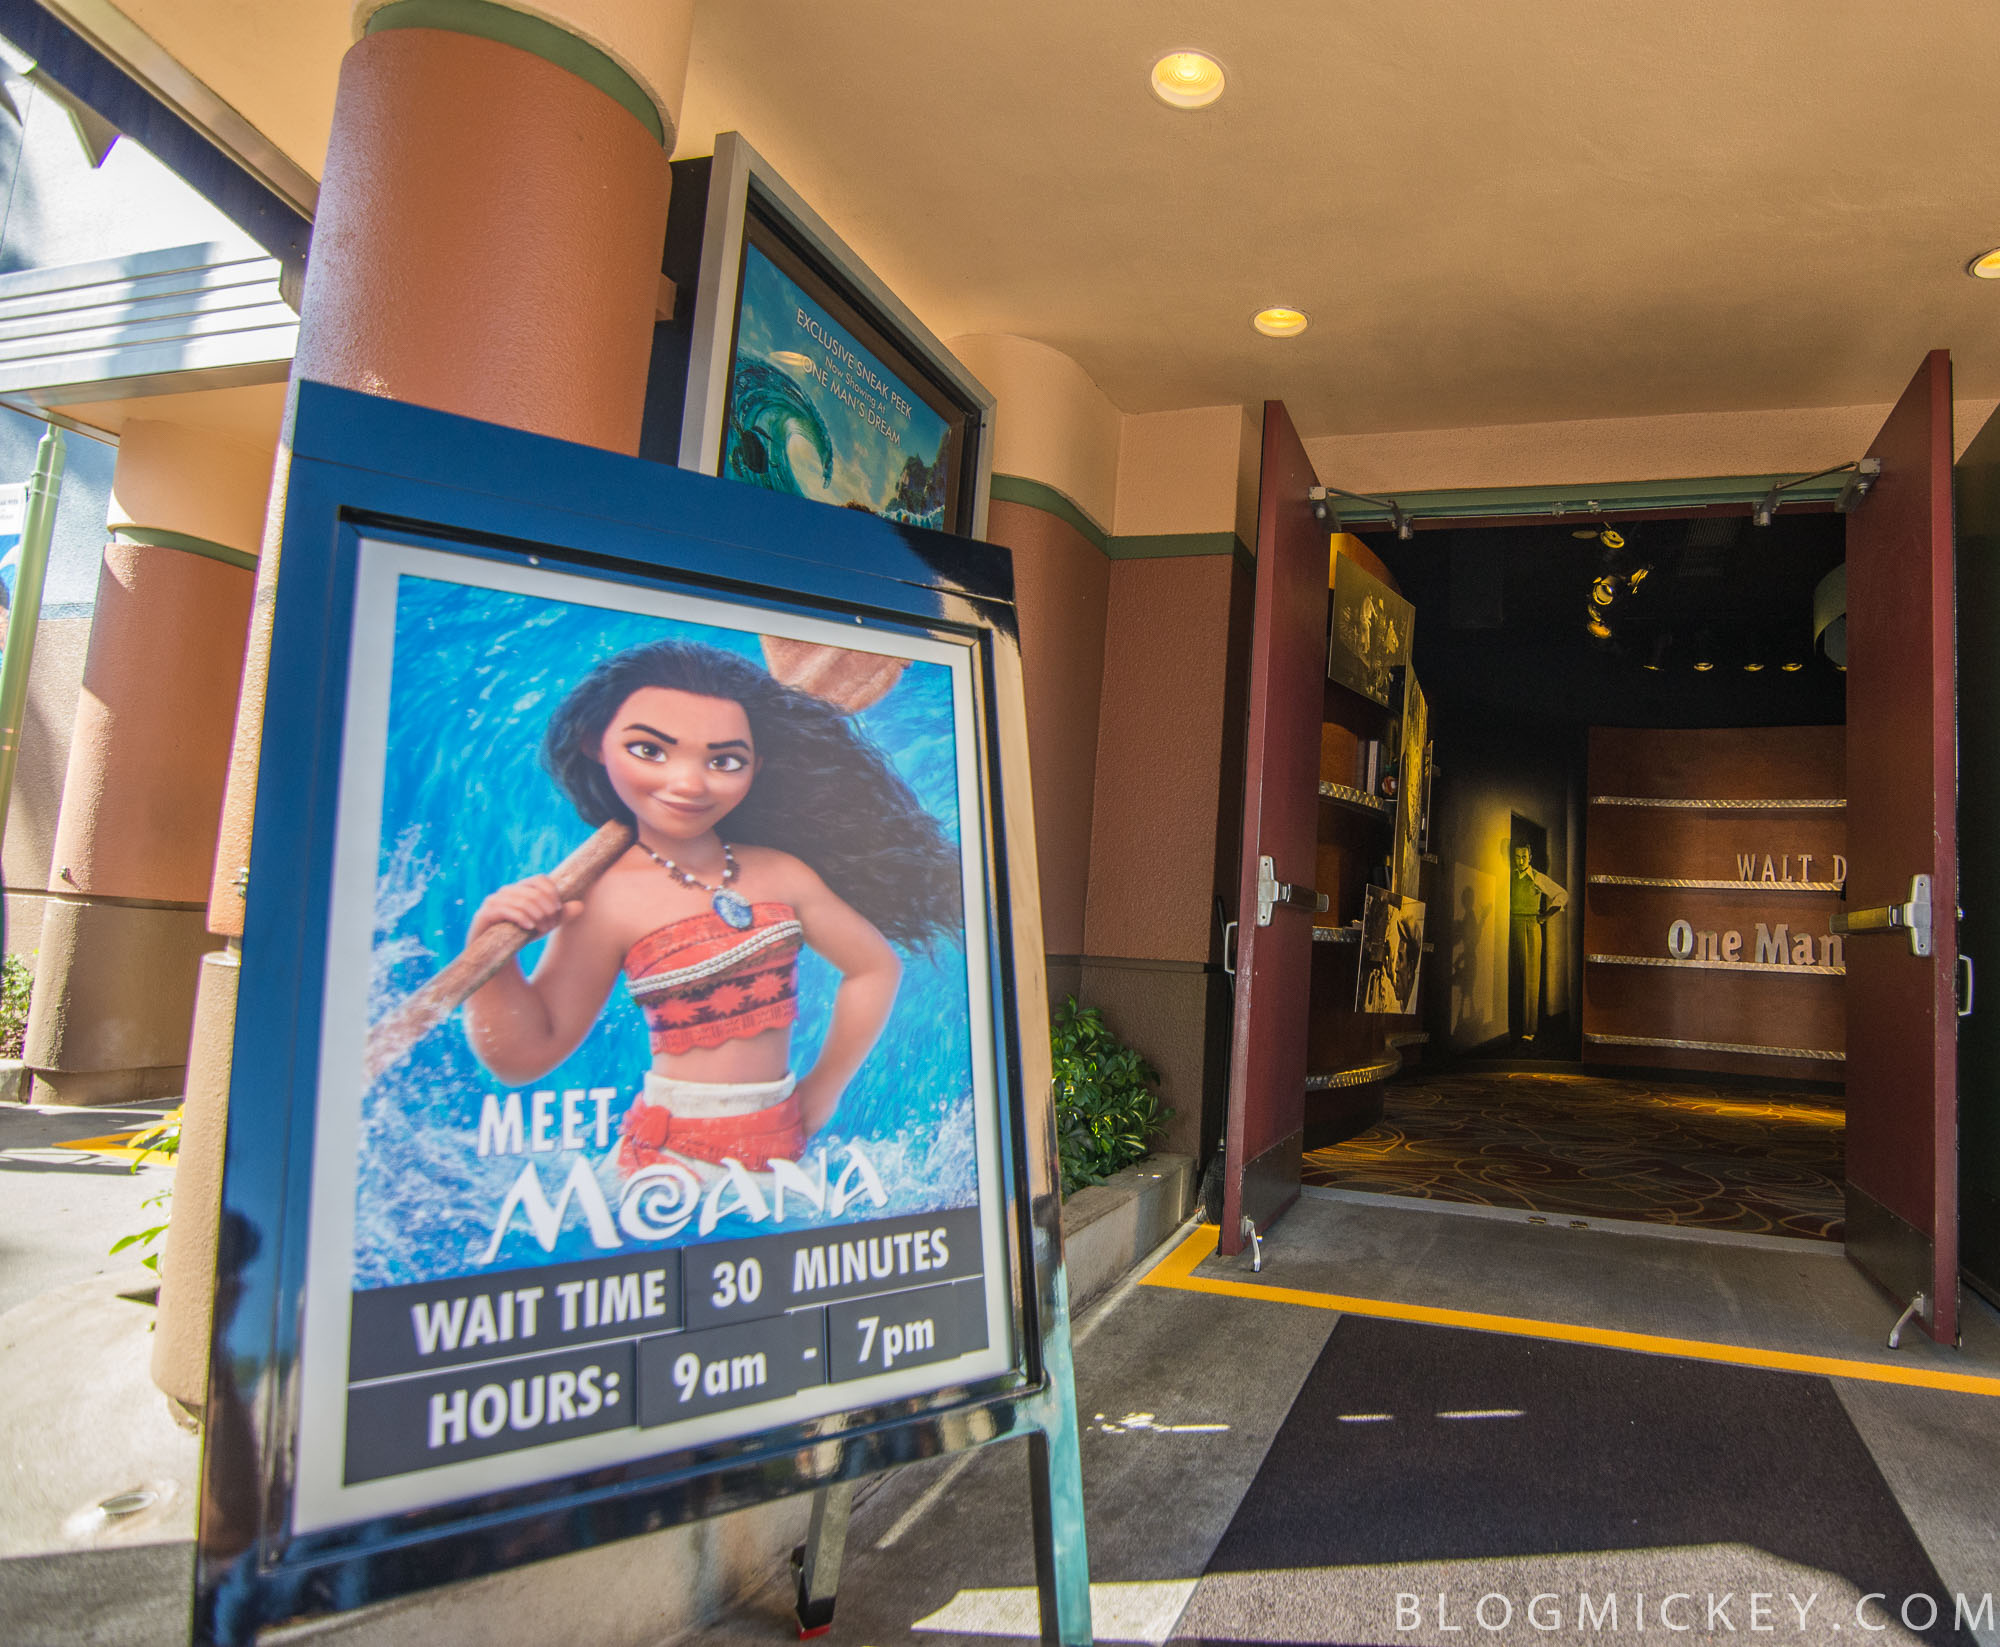 Photos moana meet and greet now open at hollywood studios blog mickey photos moana meet and greet now open at hollywood studios m4hsunfo